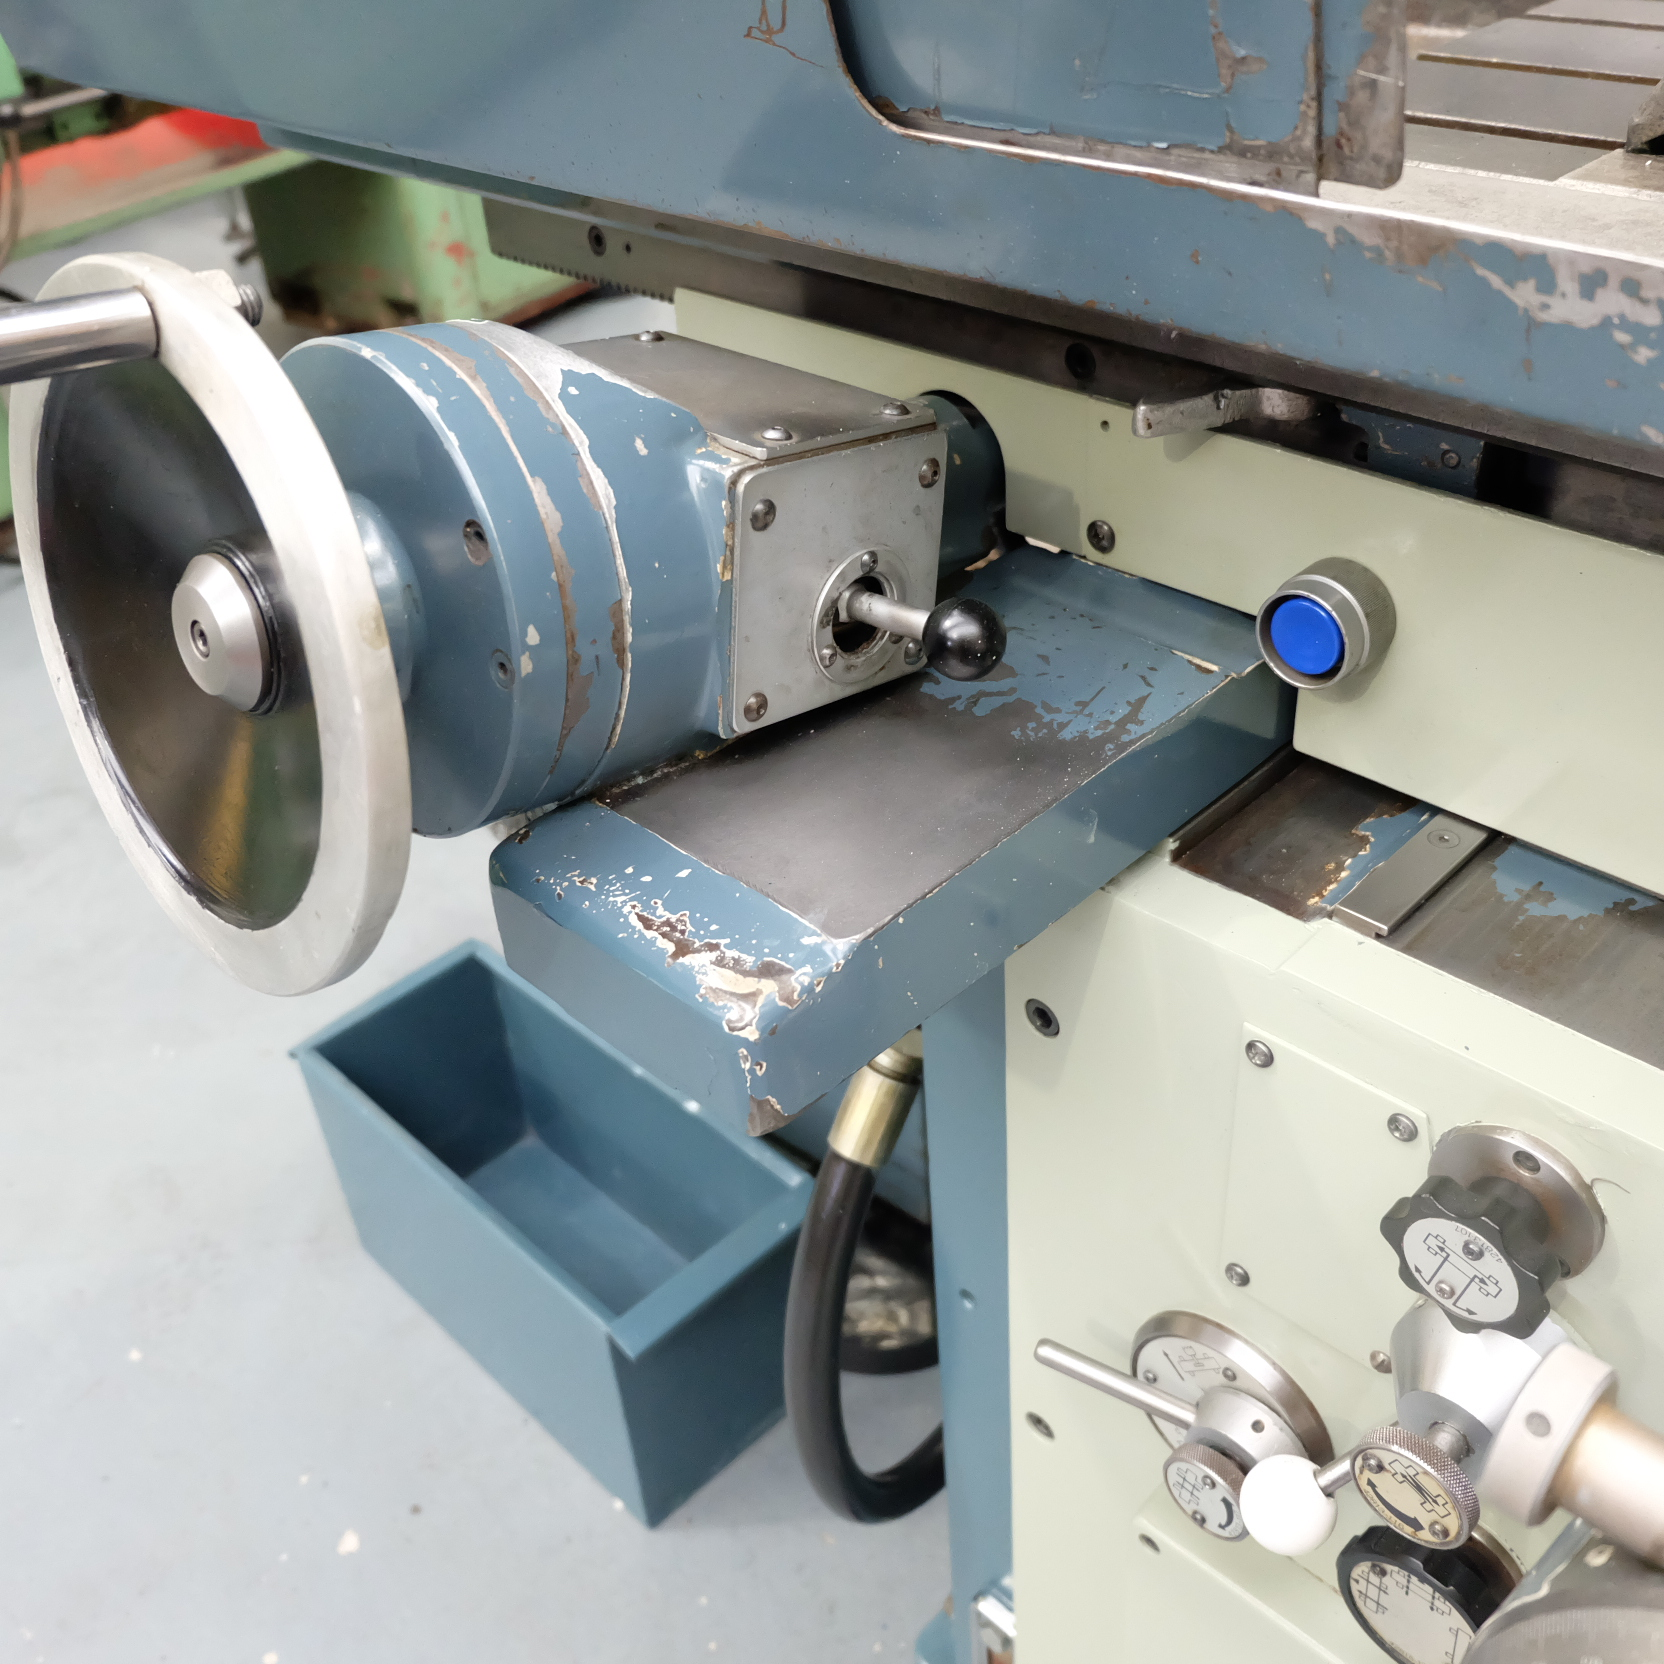 Jones & Shipman Type 1415 Toolroom Surface Grinder. With Magnetic Chuck & Coolant Tank. - Image 7 of 14